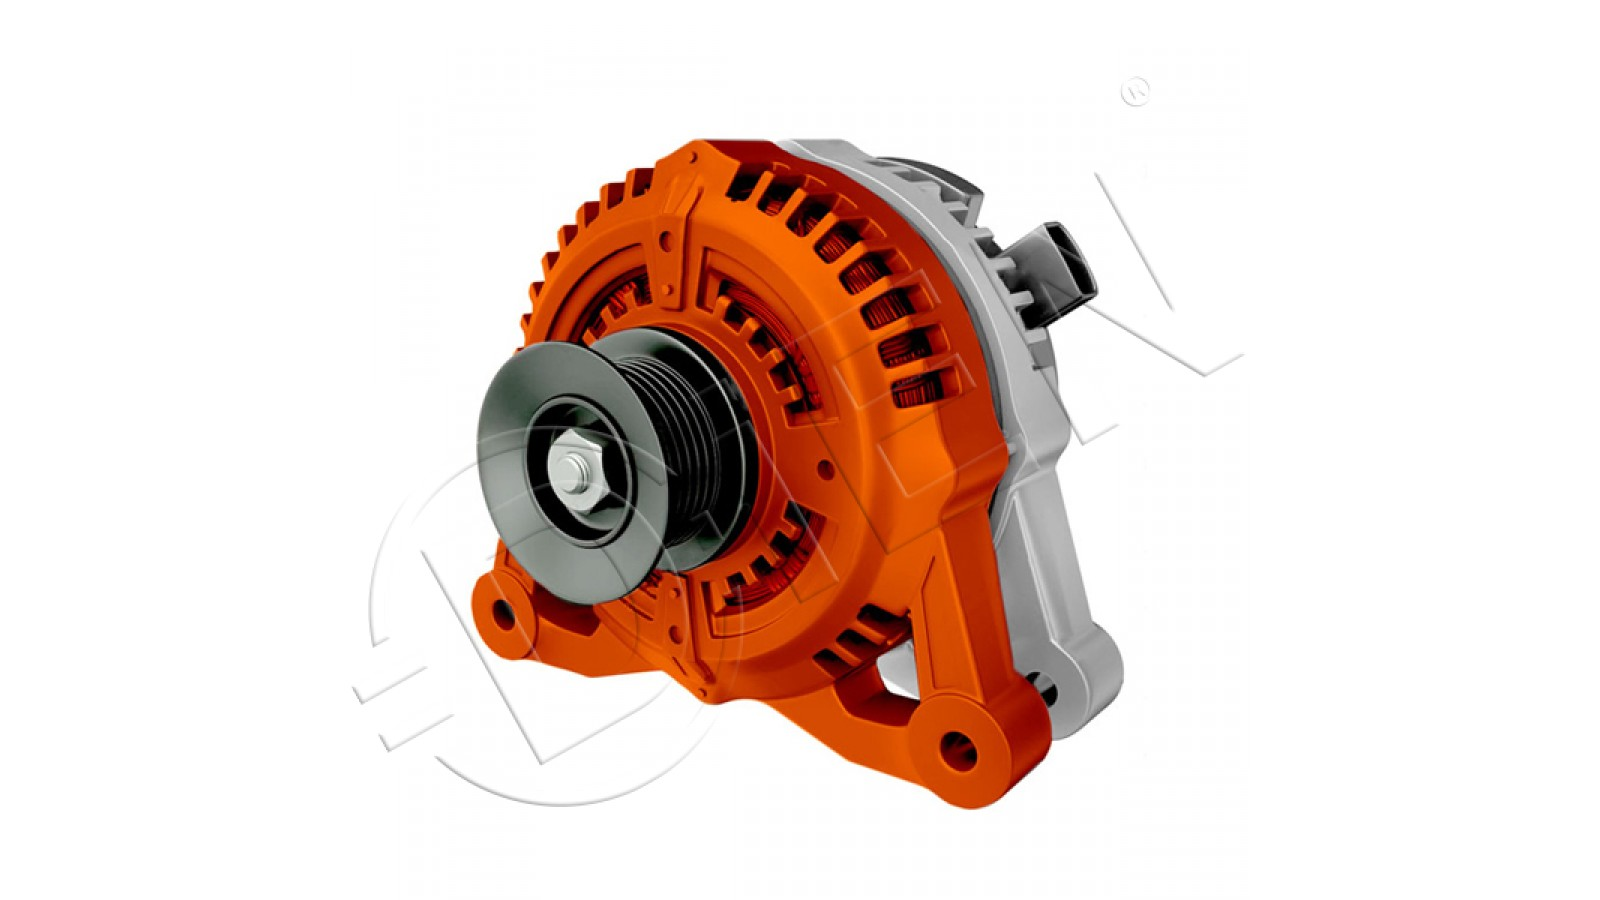 Alternatore DR DR 5 1.6 118Cv